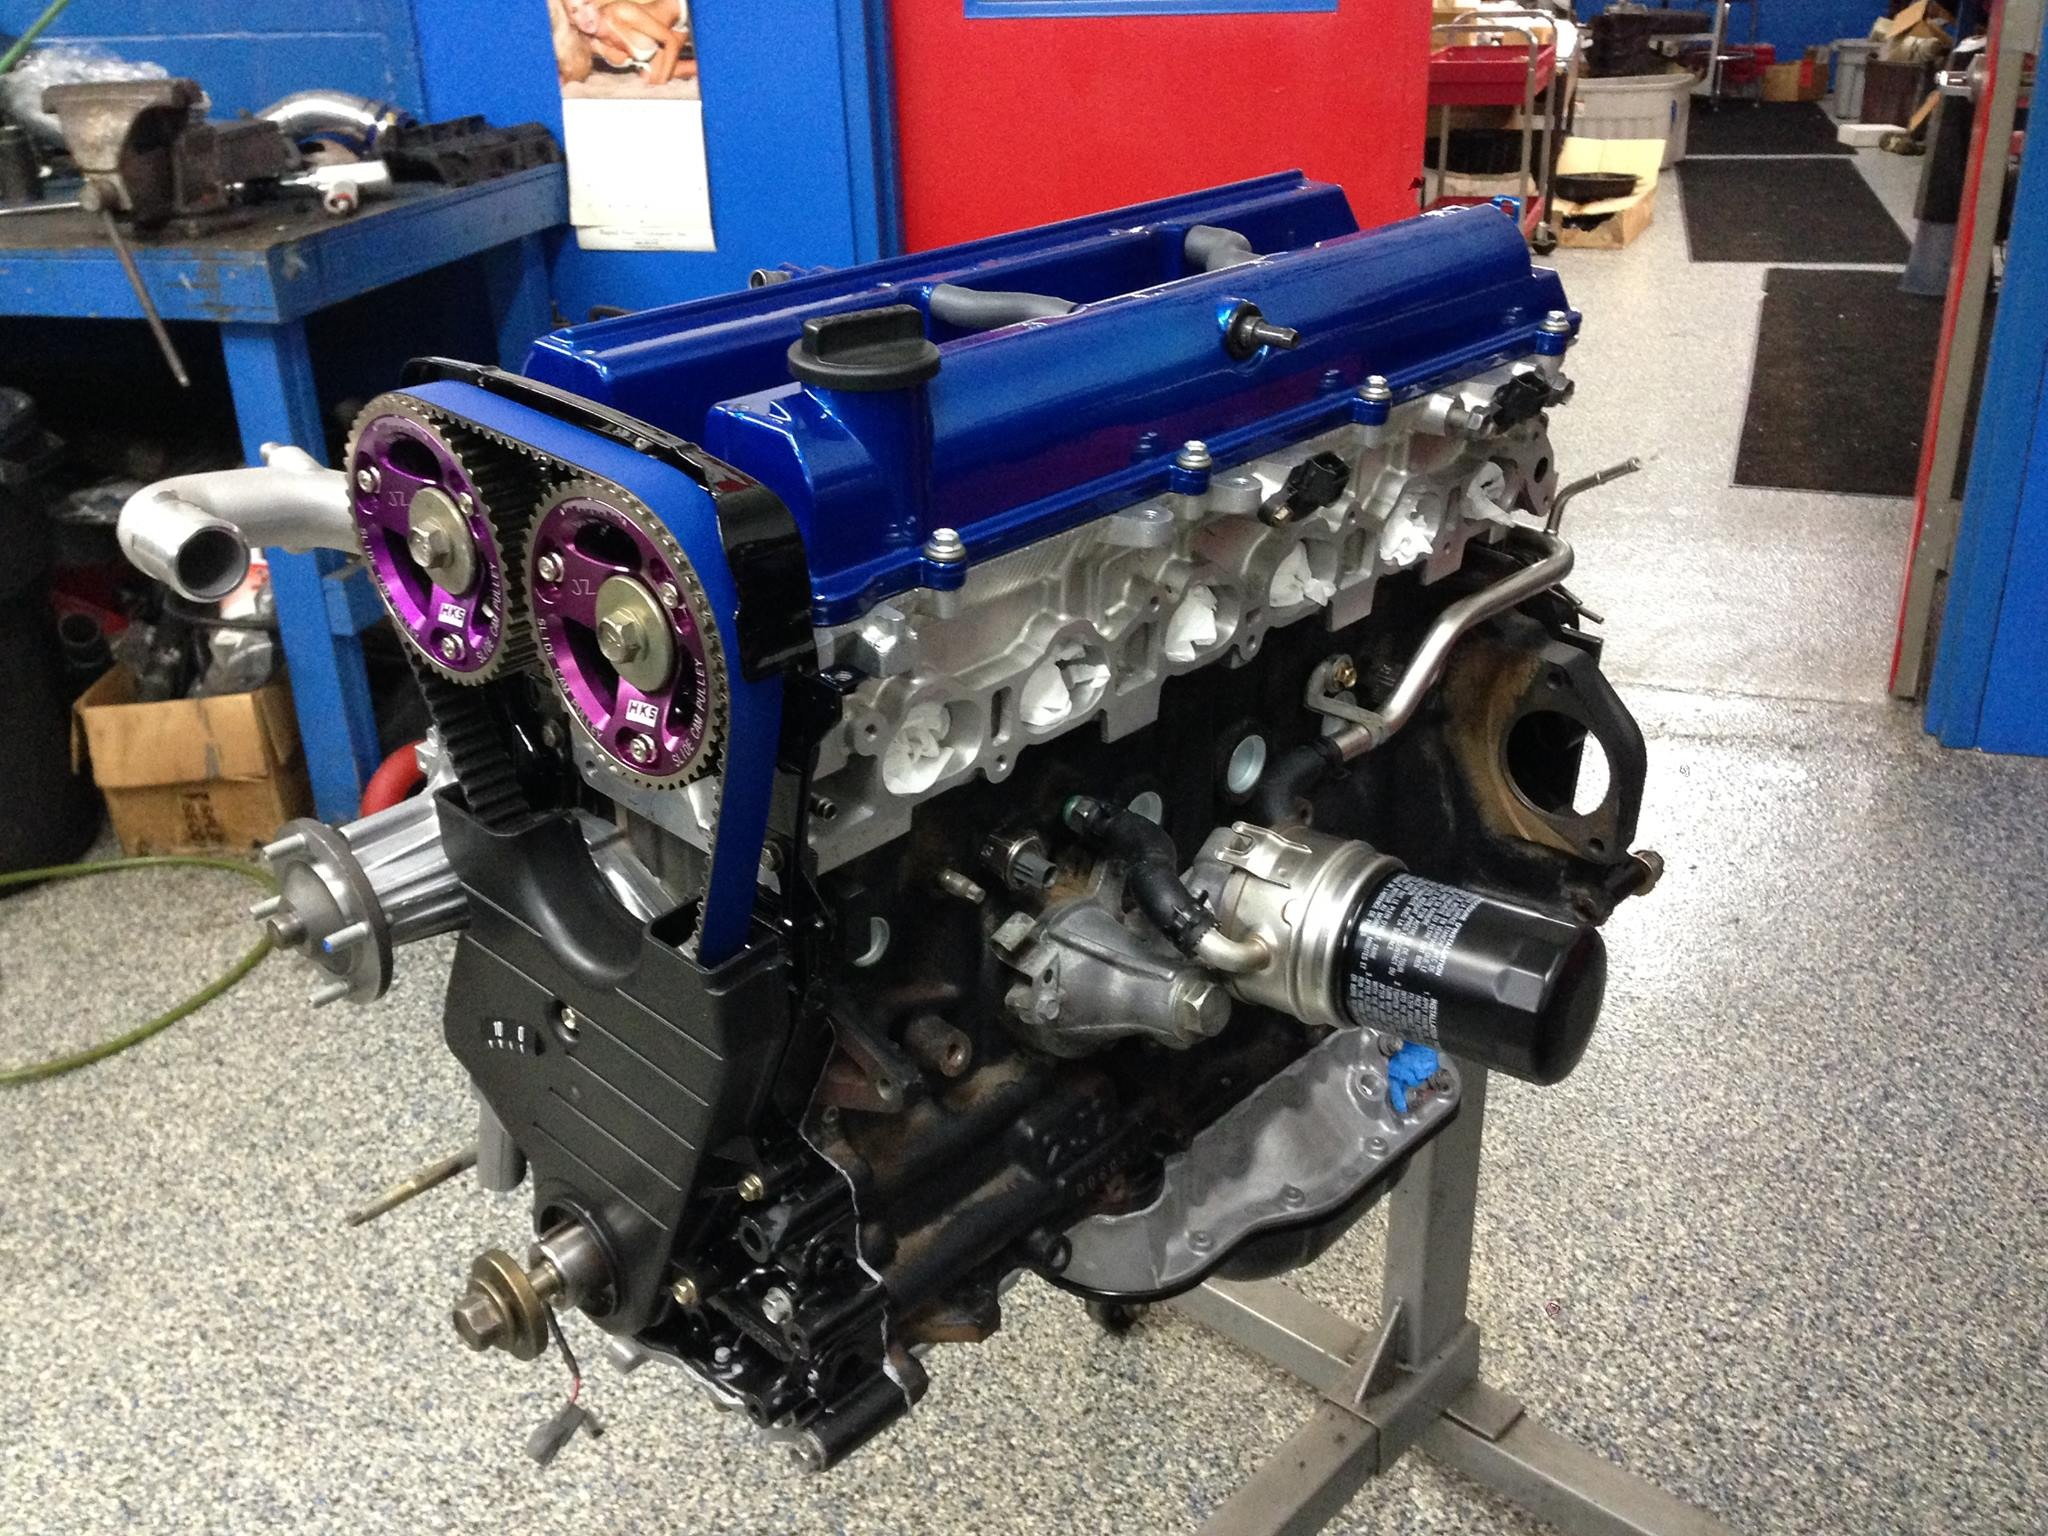 VTR Stage 1 2JZGTE Complete Engine